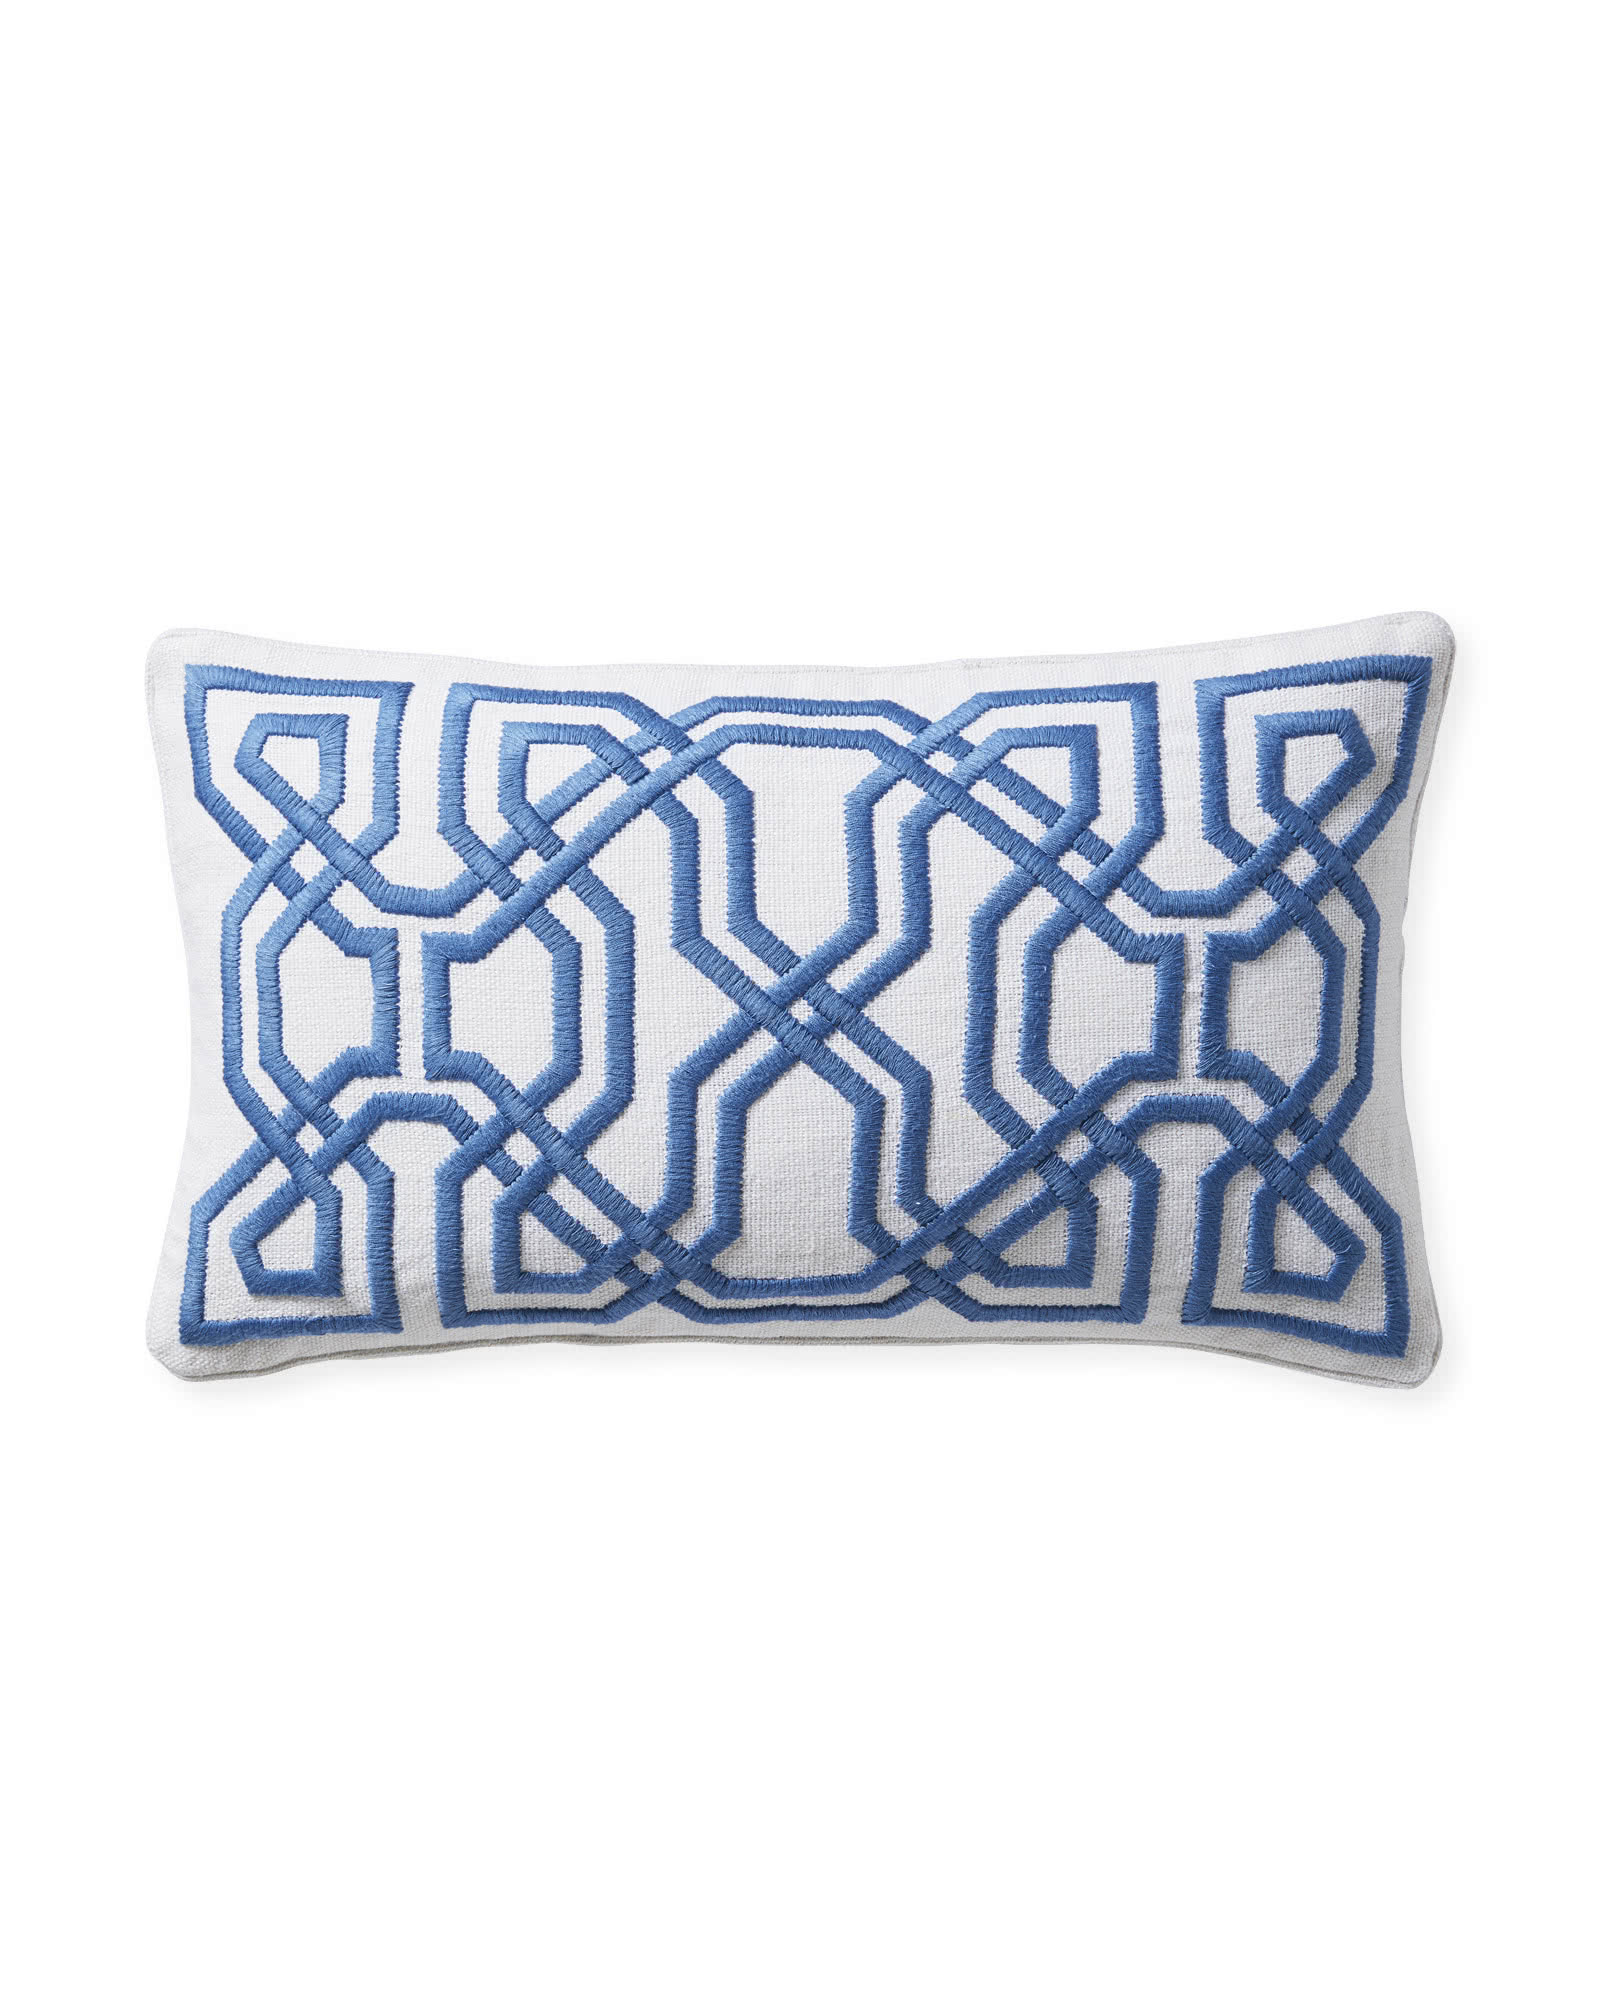 Jetty Pillow Cover, Harbor